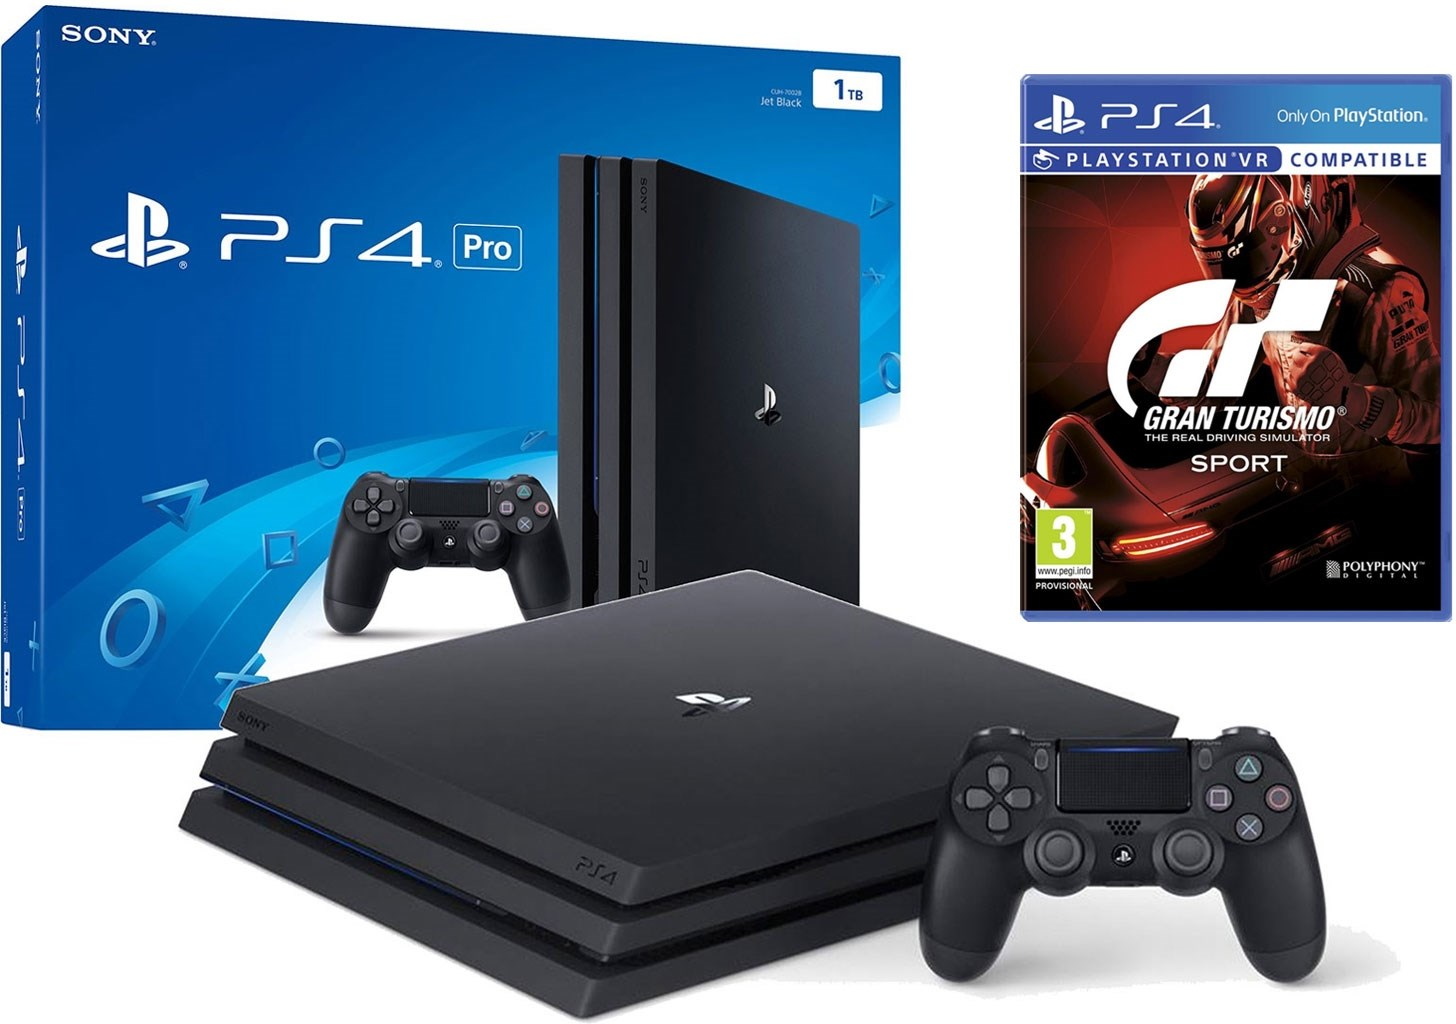 sony ps4 pro 1tb gt sport playstation 4 pro 1 tb med gran turismo sport. Black Bedroom Furniture Sets. Home Design Ideas